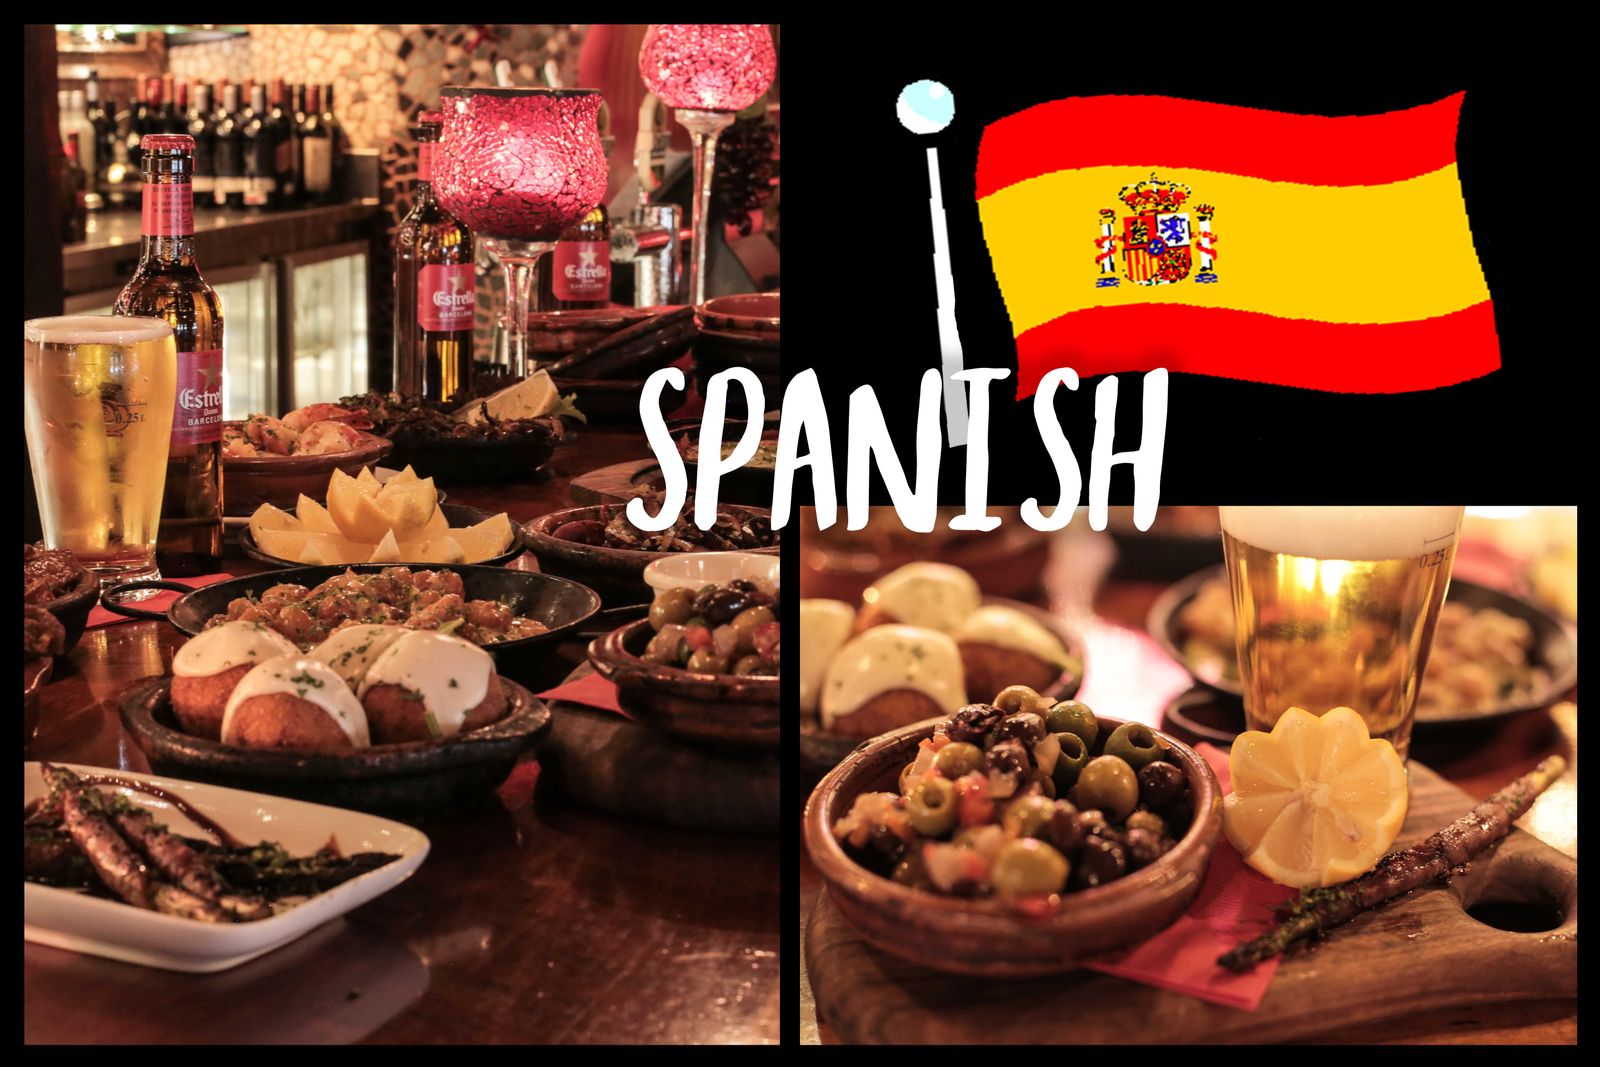 The Interest Group Spanish with Sam on GetSetUp Allows Learners To Practice And Learn Basic Spanish